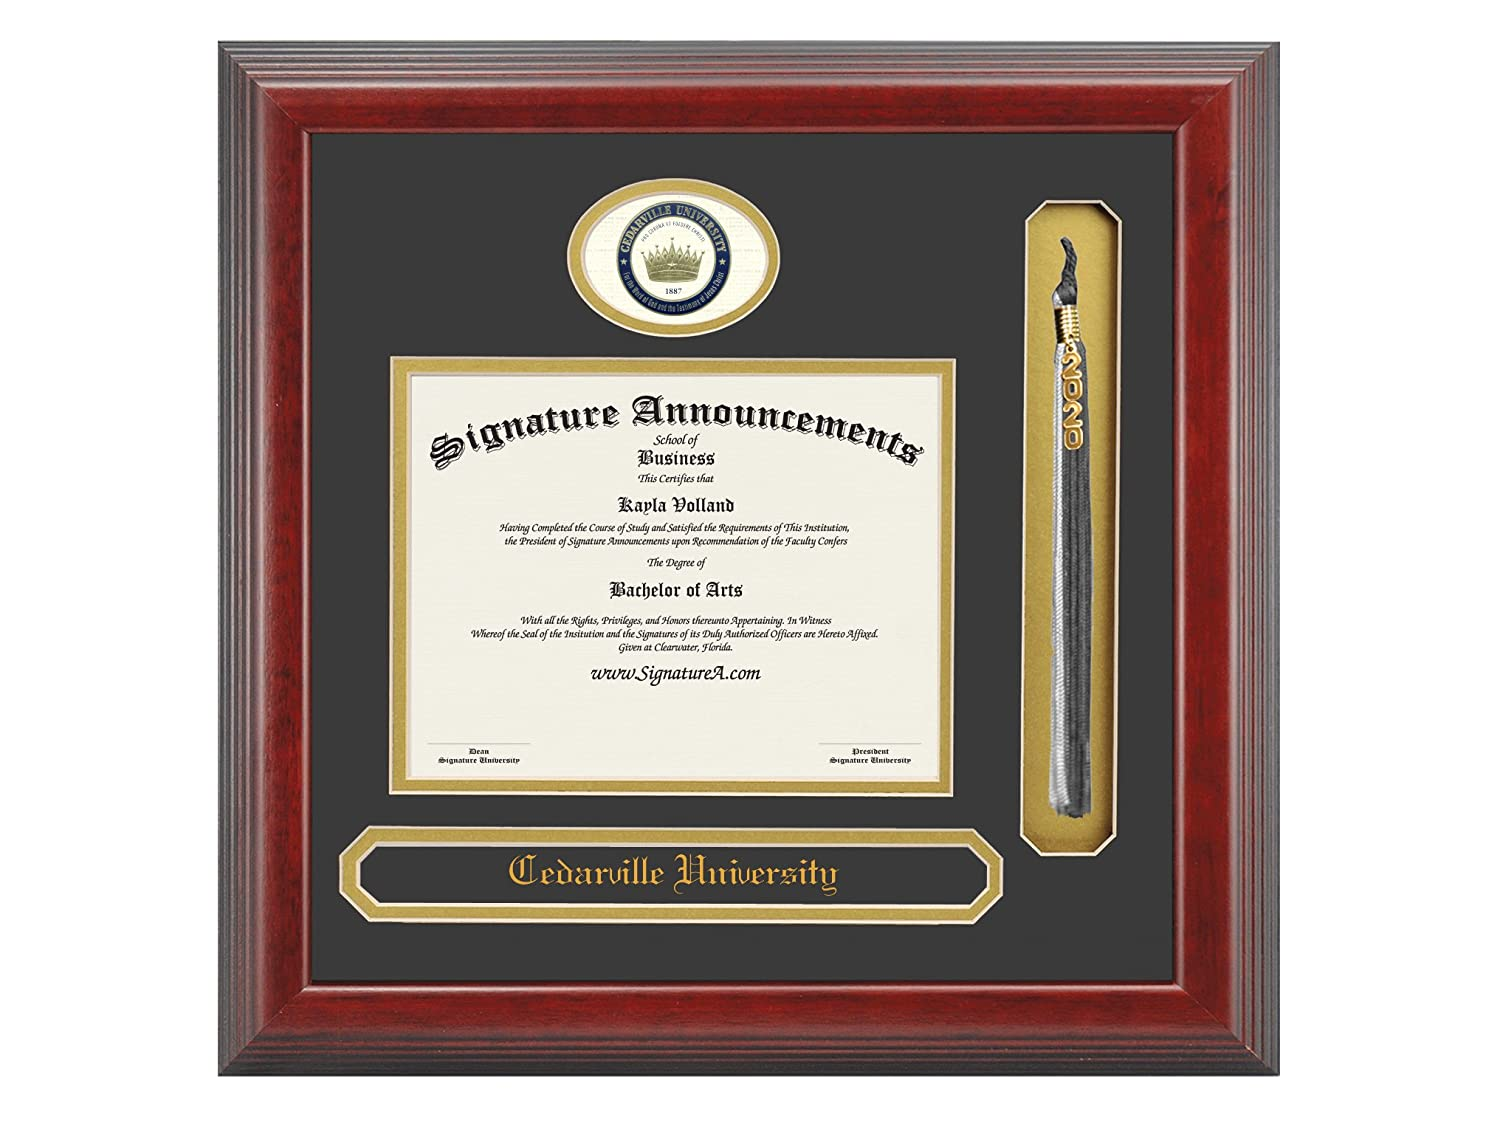 16 x 16 Cherry Signature Announcements Cedarville-University Sculpted Foil Seal Name /& Tassel Graduation Diploma Frame